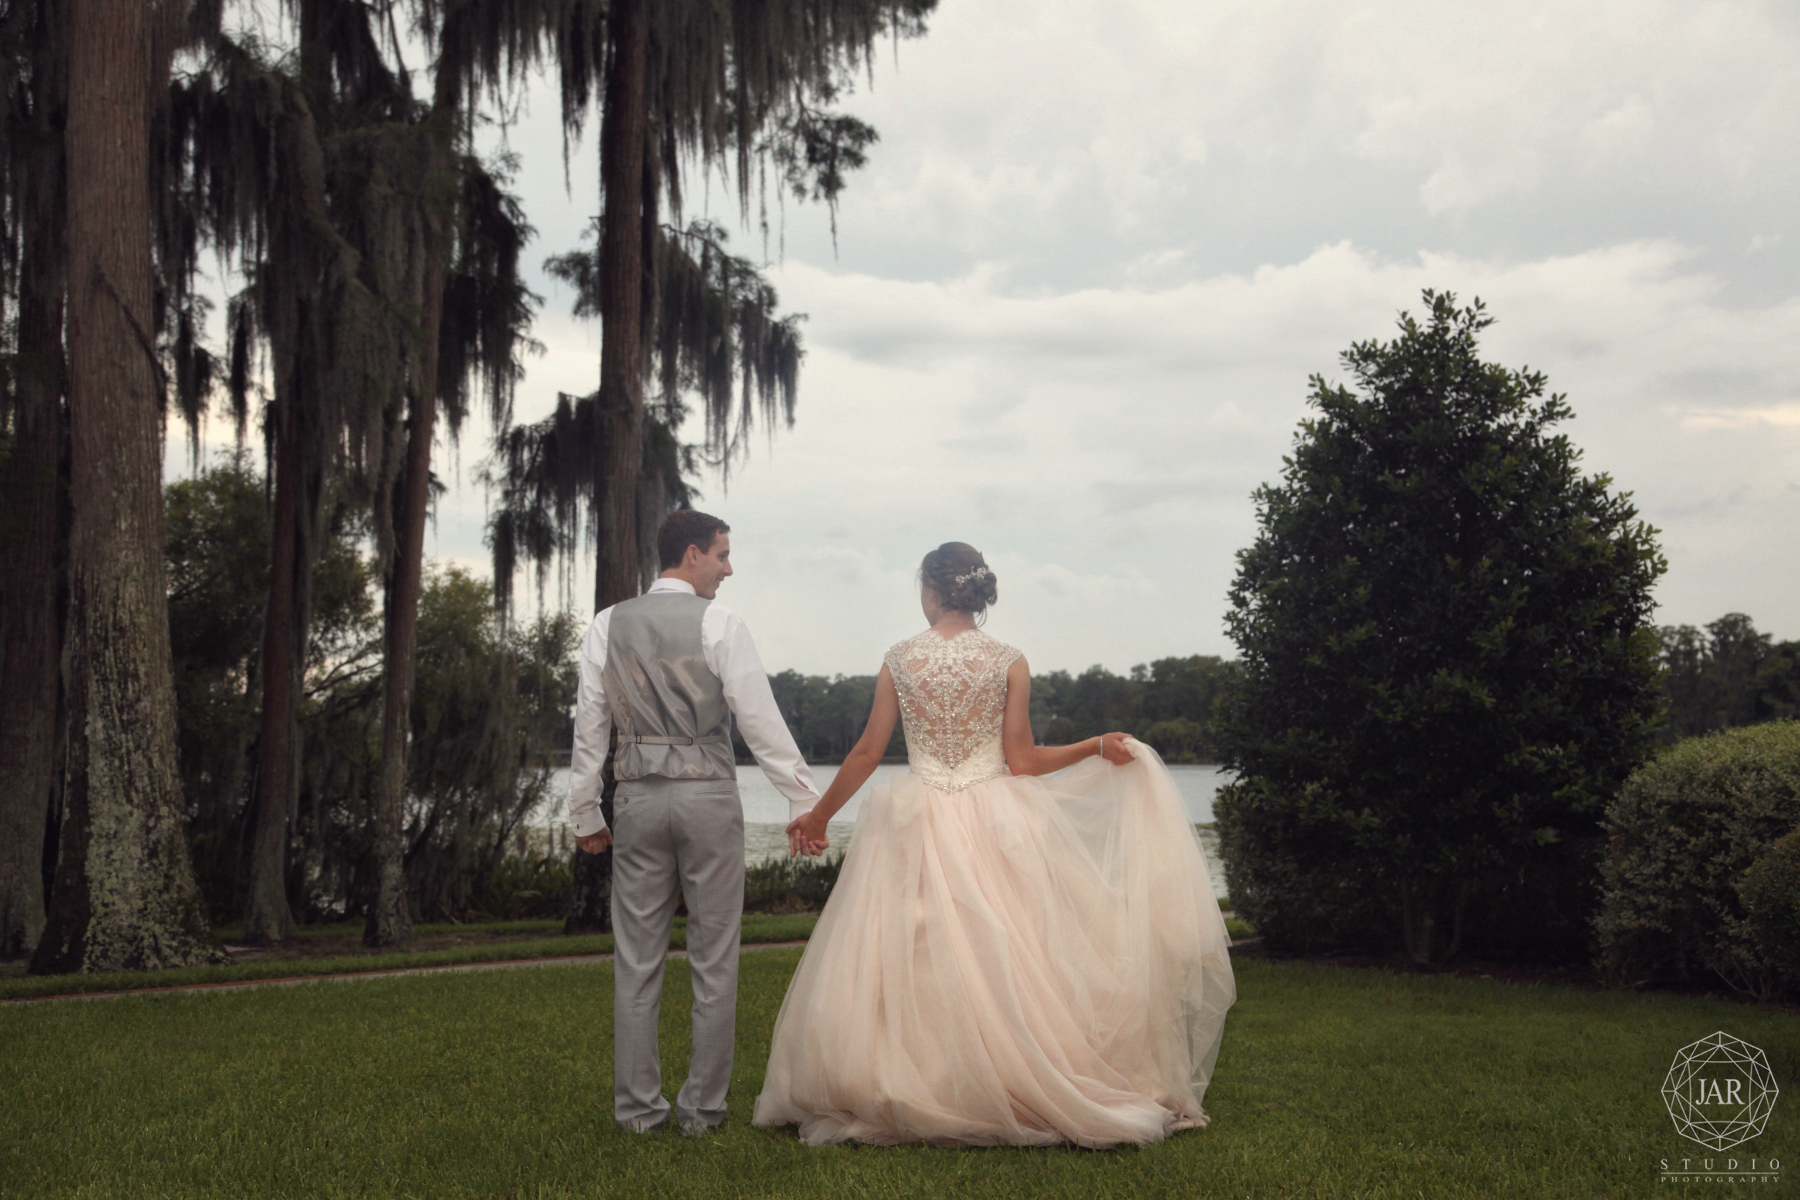 Chic modern outdoor wedding orlando fl photographer